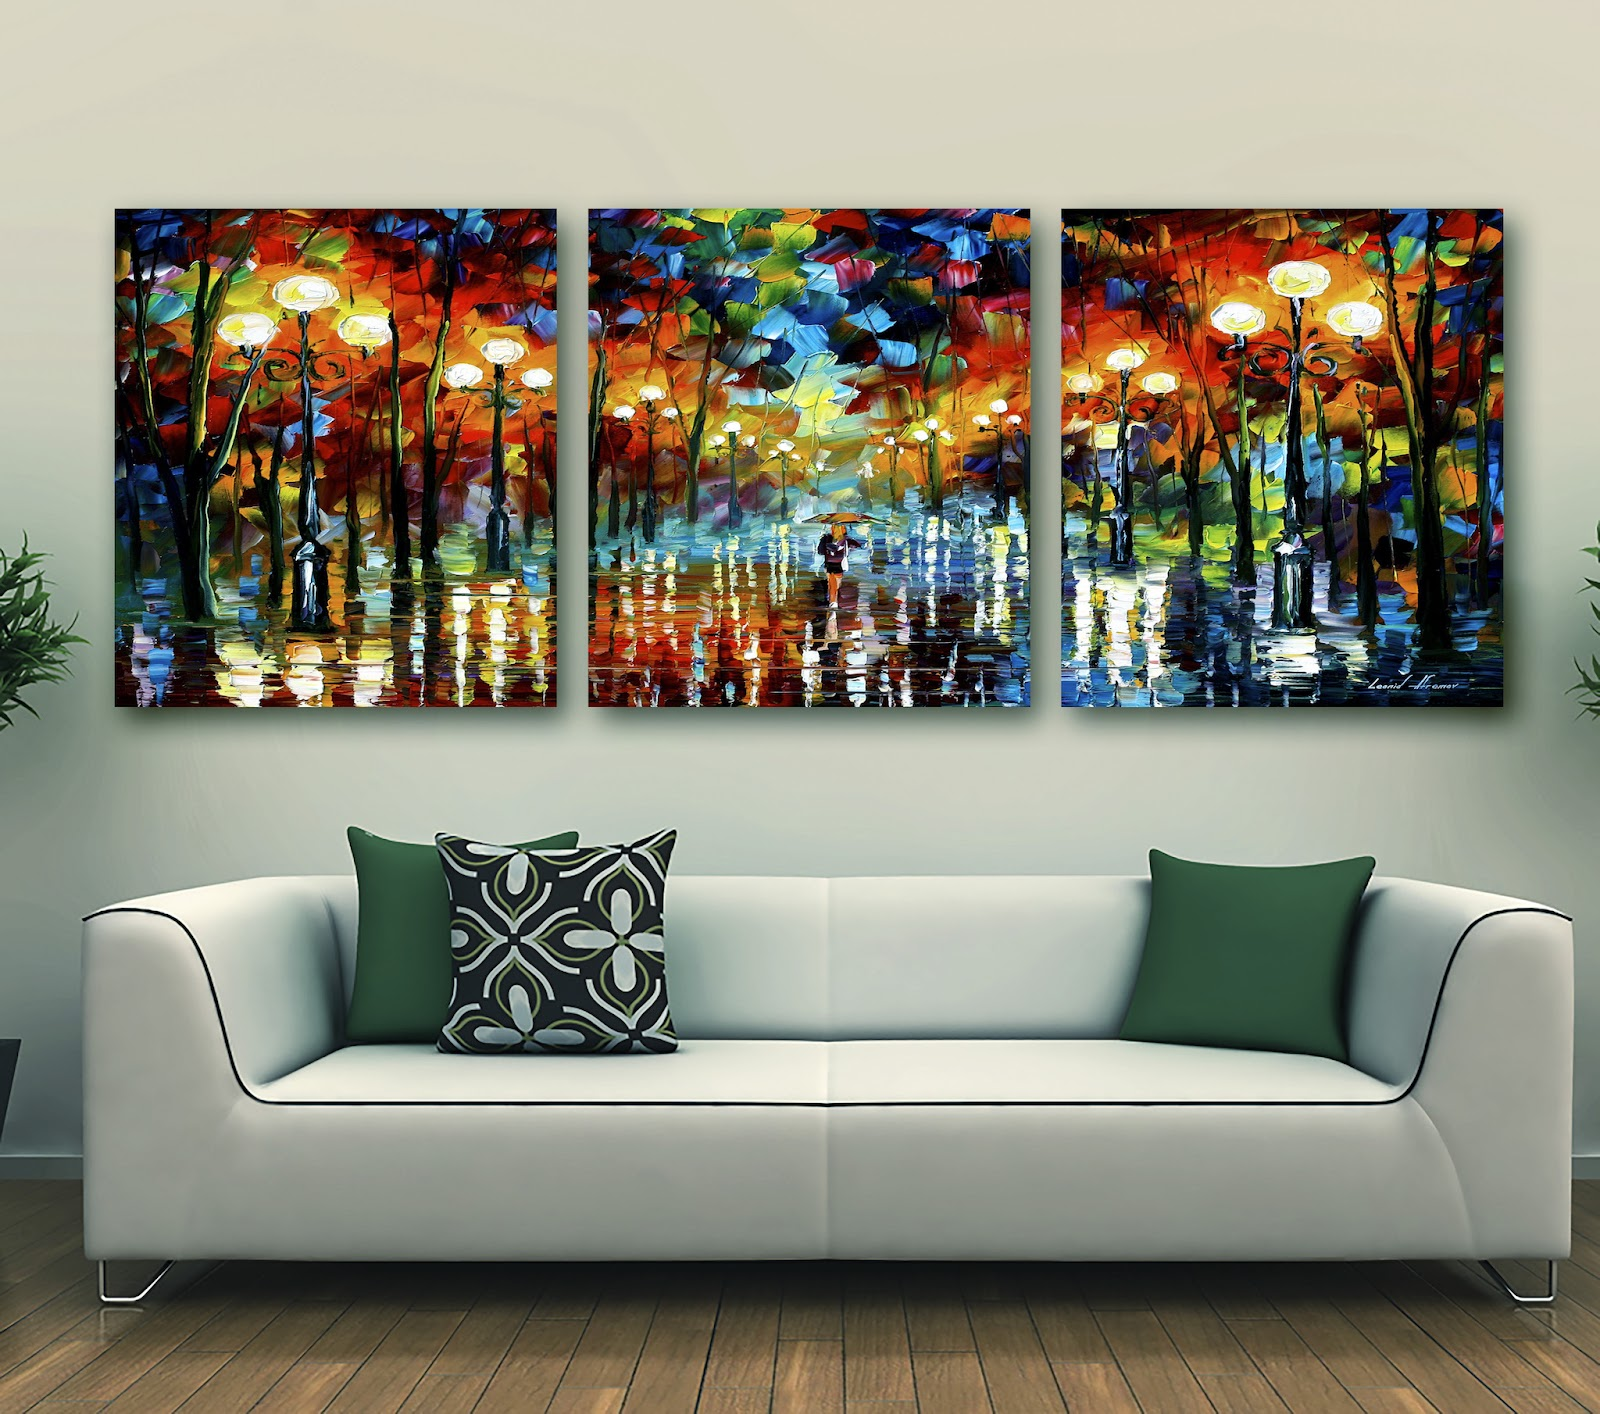 Led Picture Frame Light Up for the wall in your room